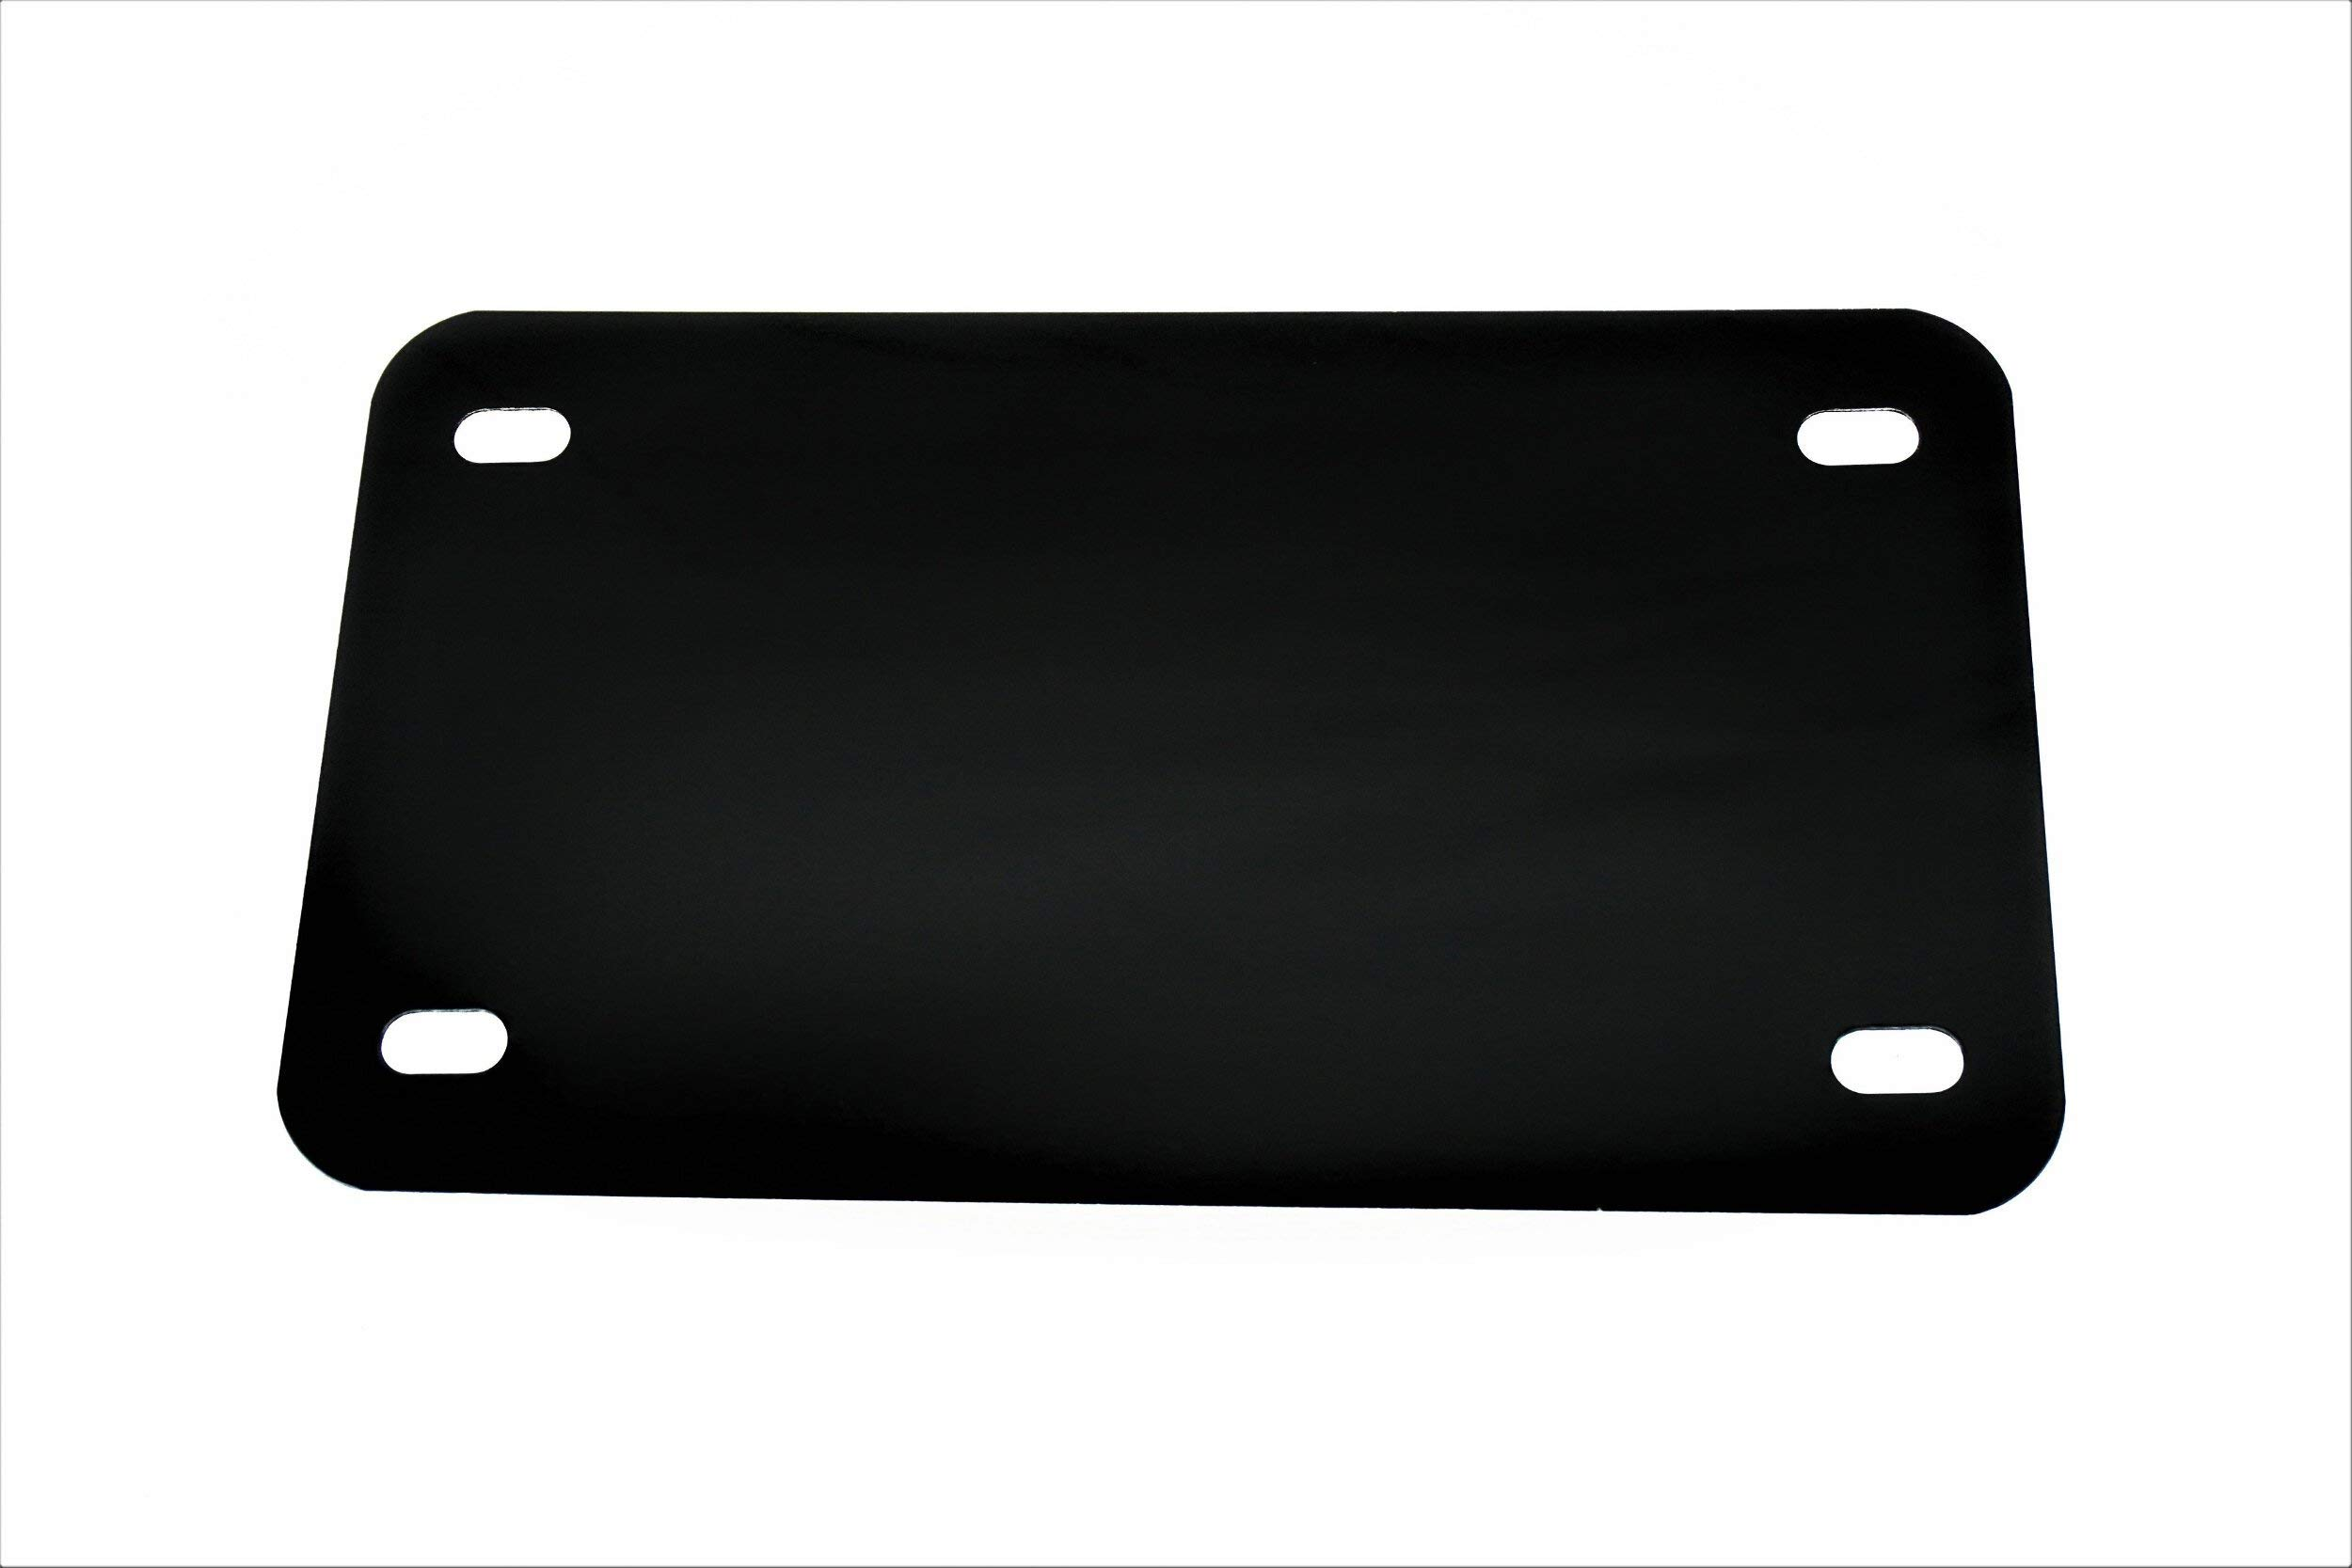 Black - Motorcycle Anodized Aluminum License Plate Blank - 0.025/0.5mm - 4x7 by Partsapiens Corp.